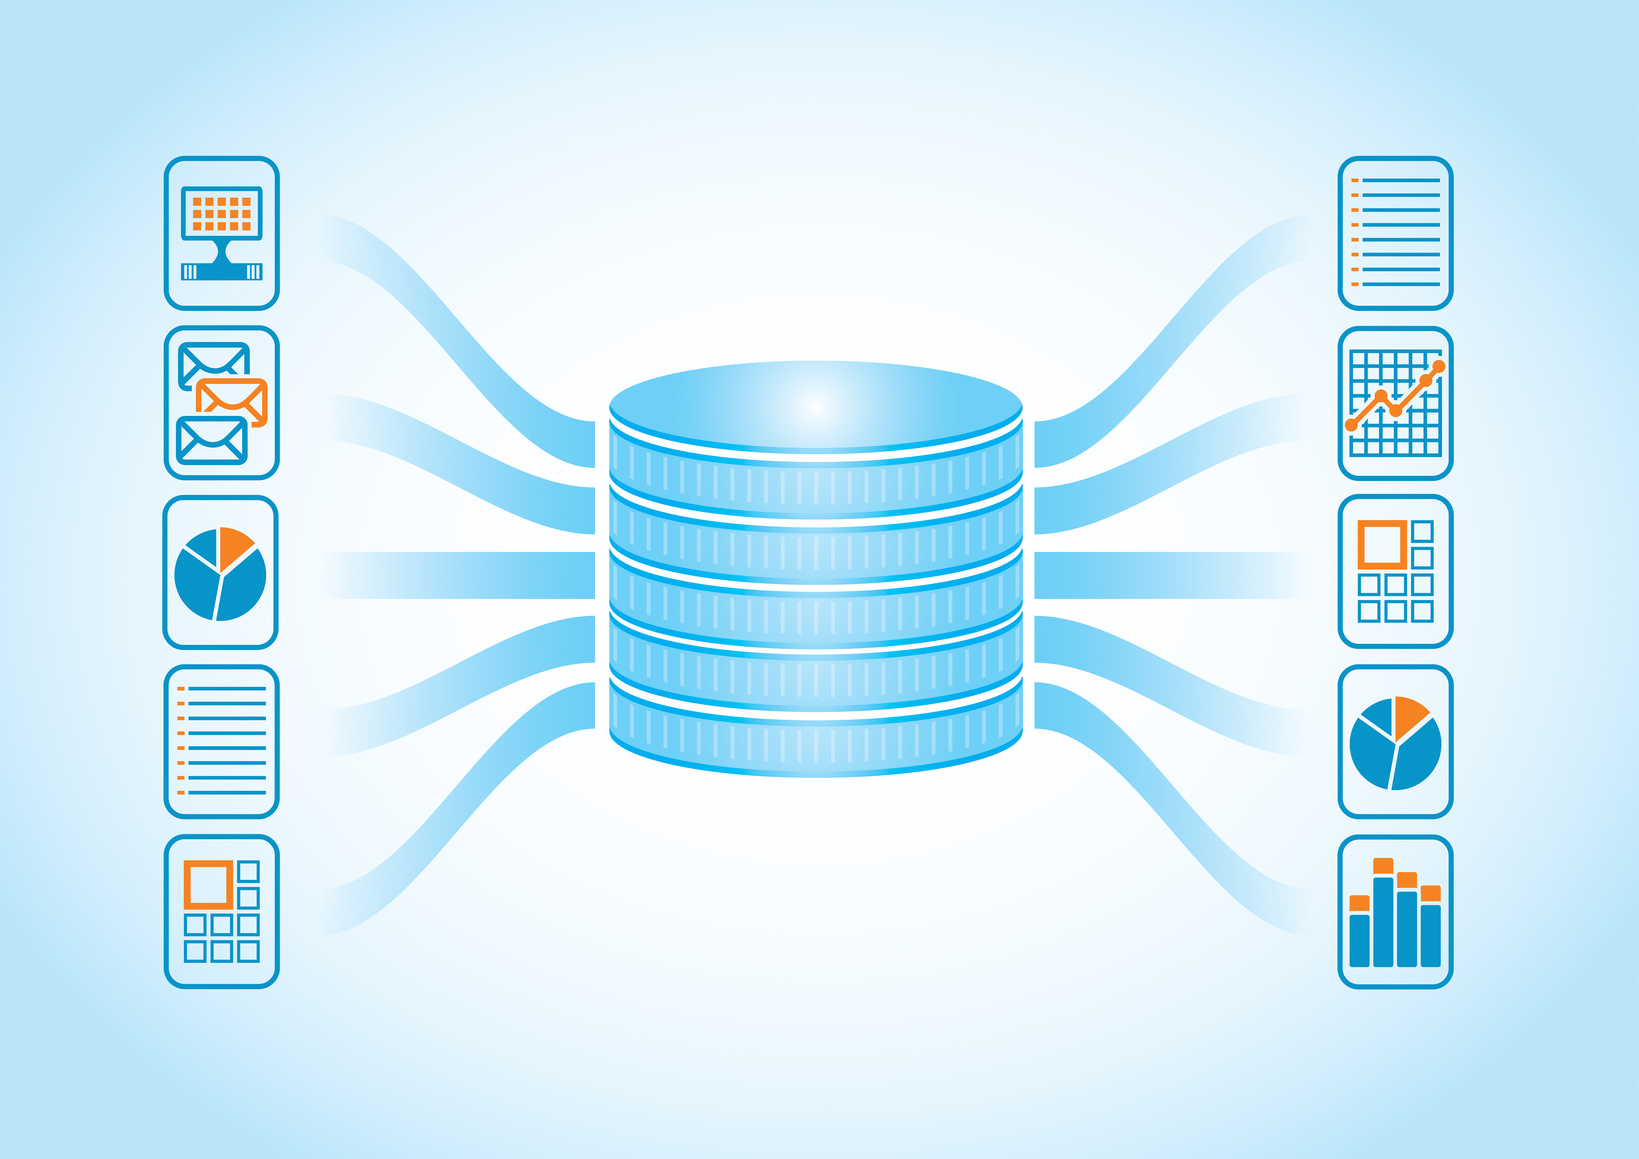 Stock graphic of database icon branching into other icons